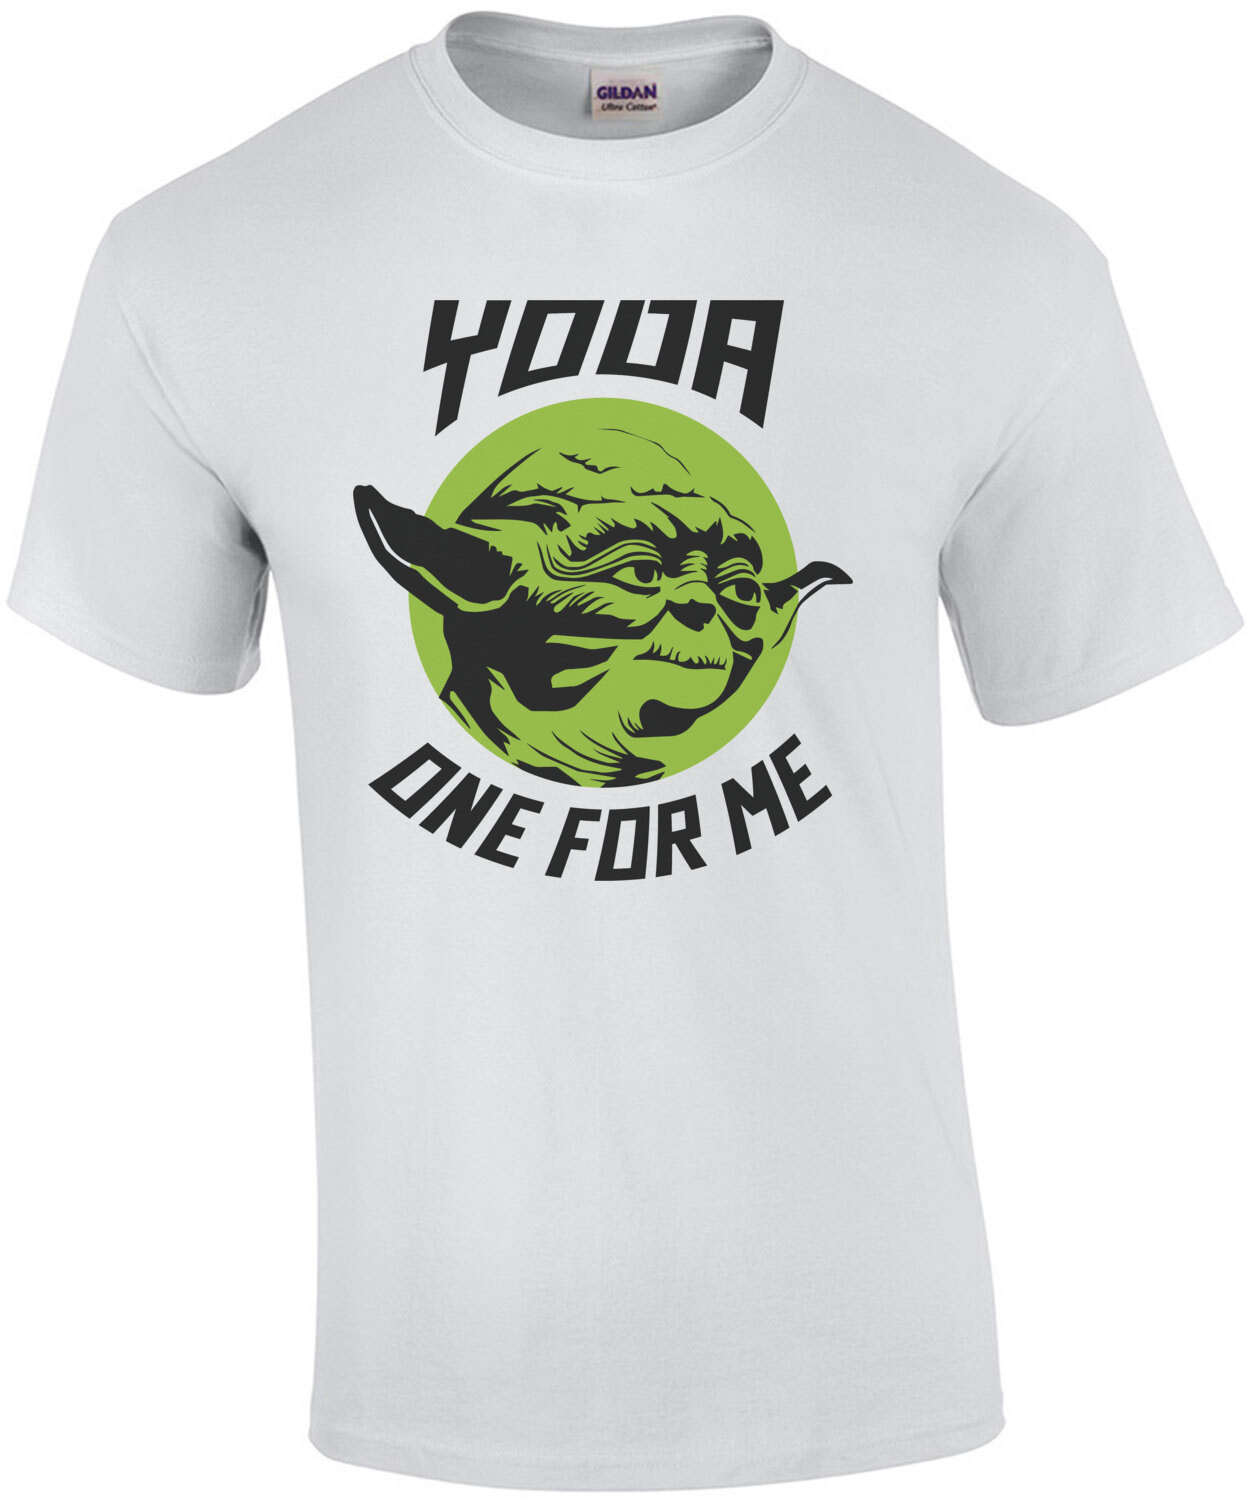 Yoda One For Me - Star Wars T-Shirt